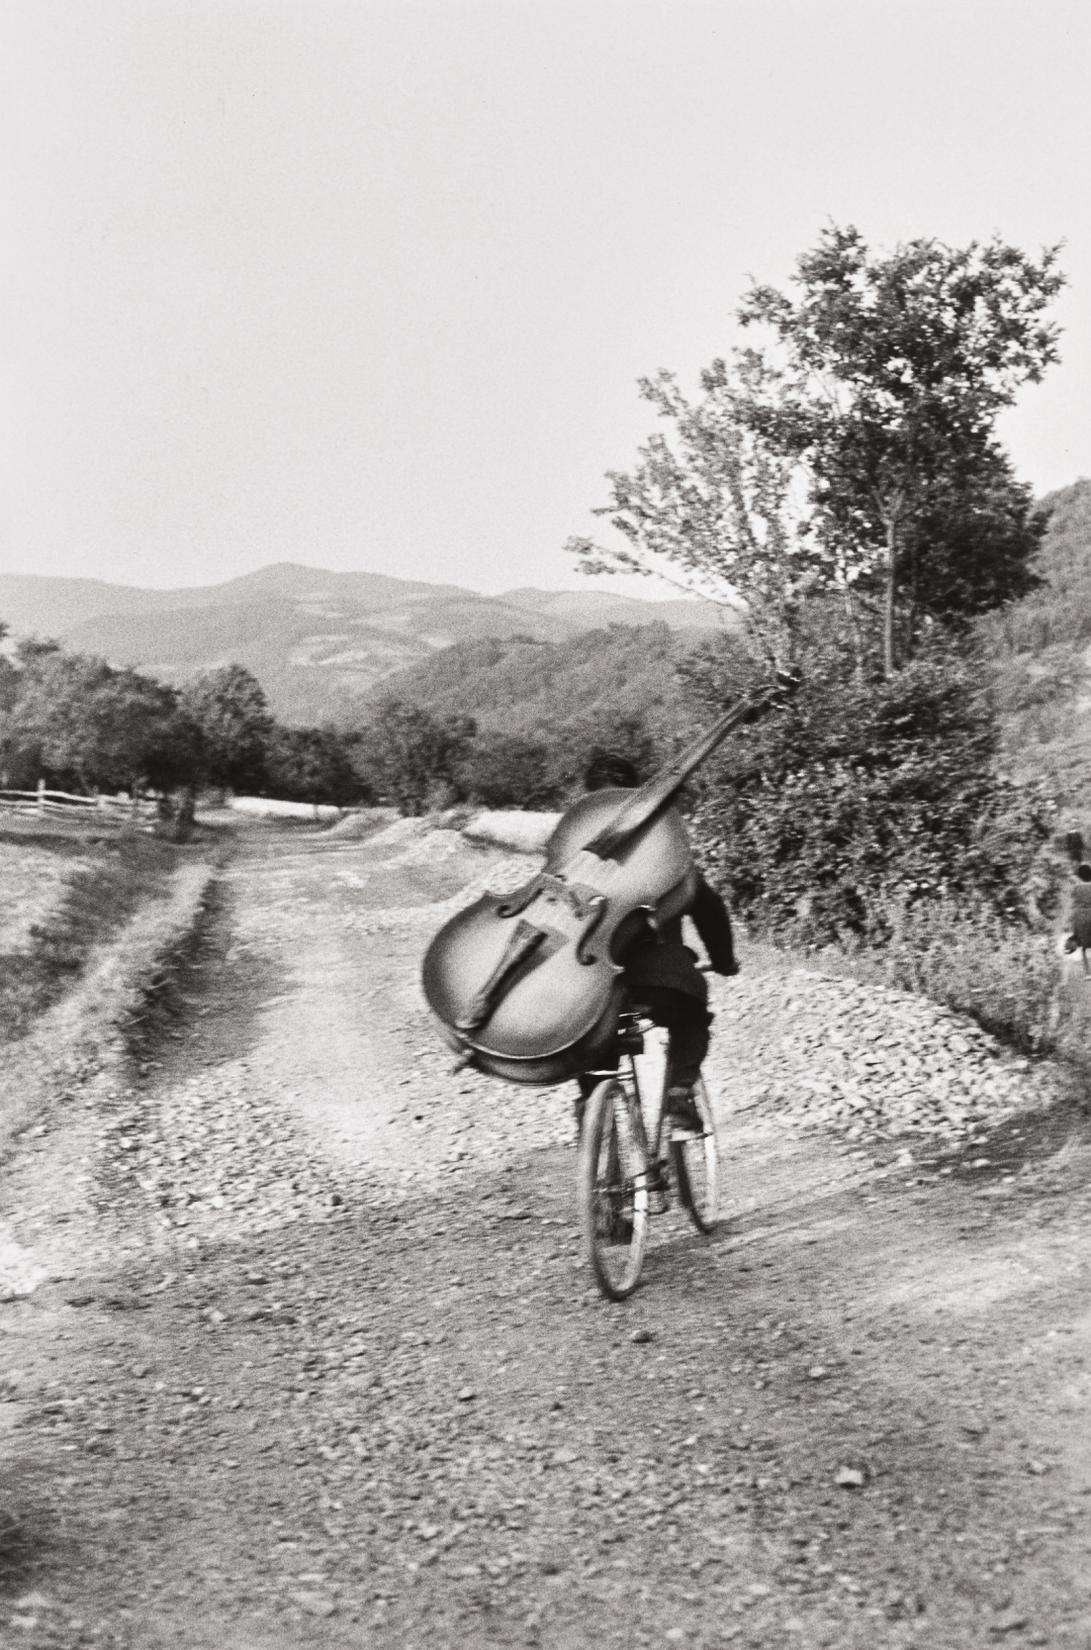 Henri Cartier-Bresson-Bass Player On The Road Belgrade-Kraljevo, To Play At A Village Festival Near Rudnik, Serbia, Yugoslavia-1965